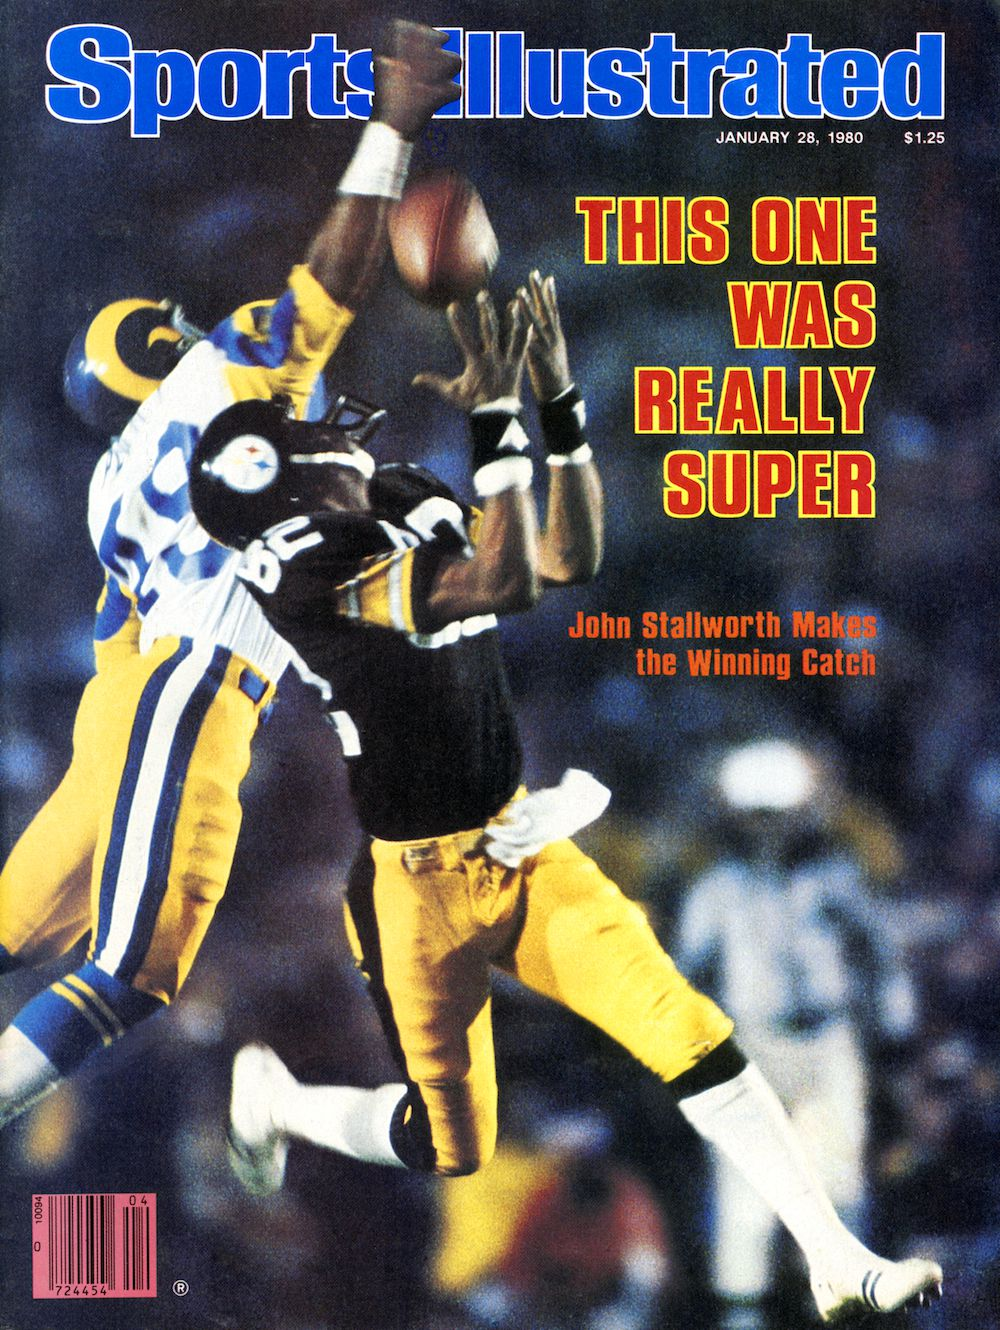 January 28, 1980 Sports Illustrated Cover. Football: Super Bowl XIV. Pittsburgh Steelers John Stallworth (82) in action, making catch and scoring game winning touchdown vs Los Angeles Rams Rod Perry (49) at Rose Bowl Stadium. Pasadena, CA 1/20/1980 MANDATORY CREDIT: Walter Iooss Jr./Sports Illustrated SetNumber: X24127 TK1